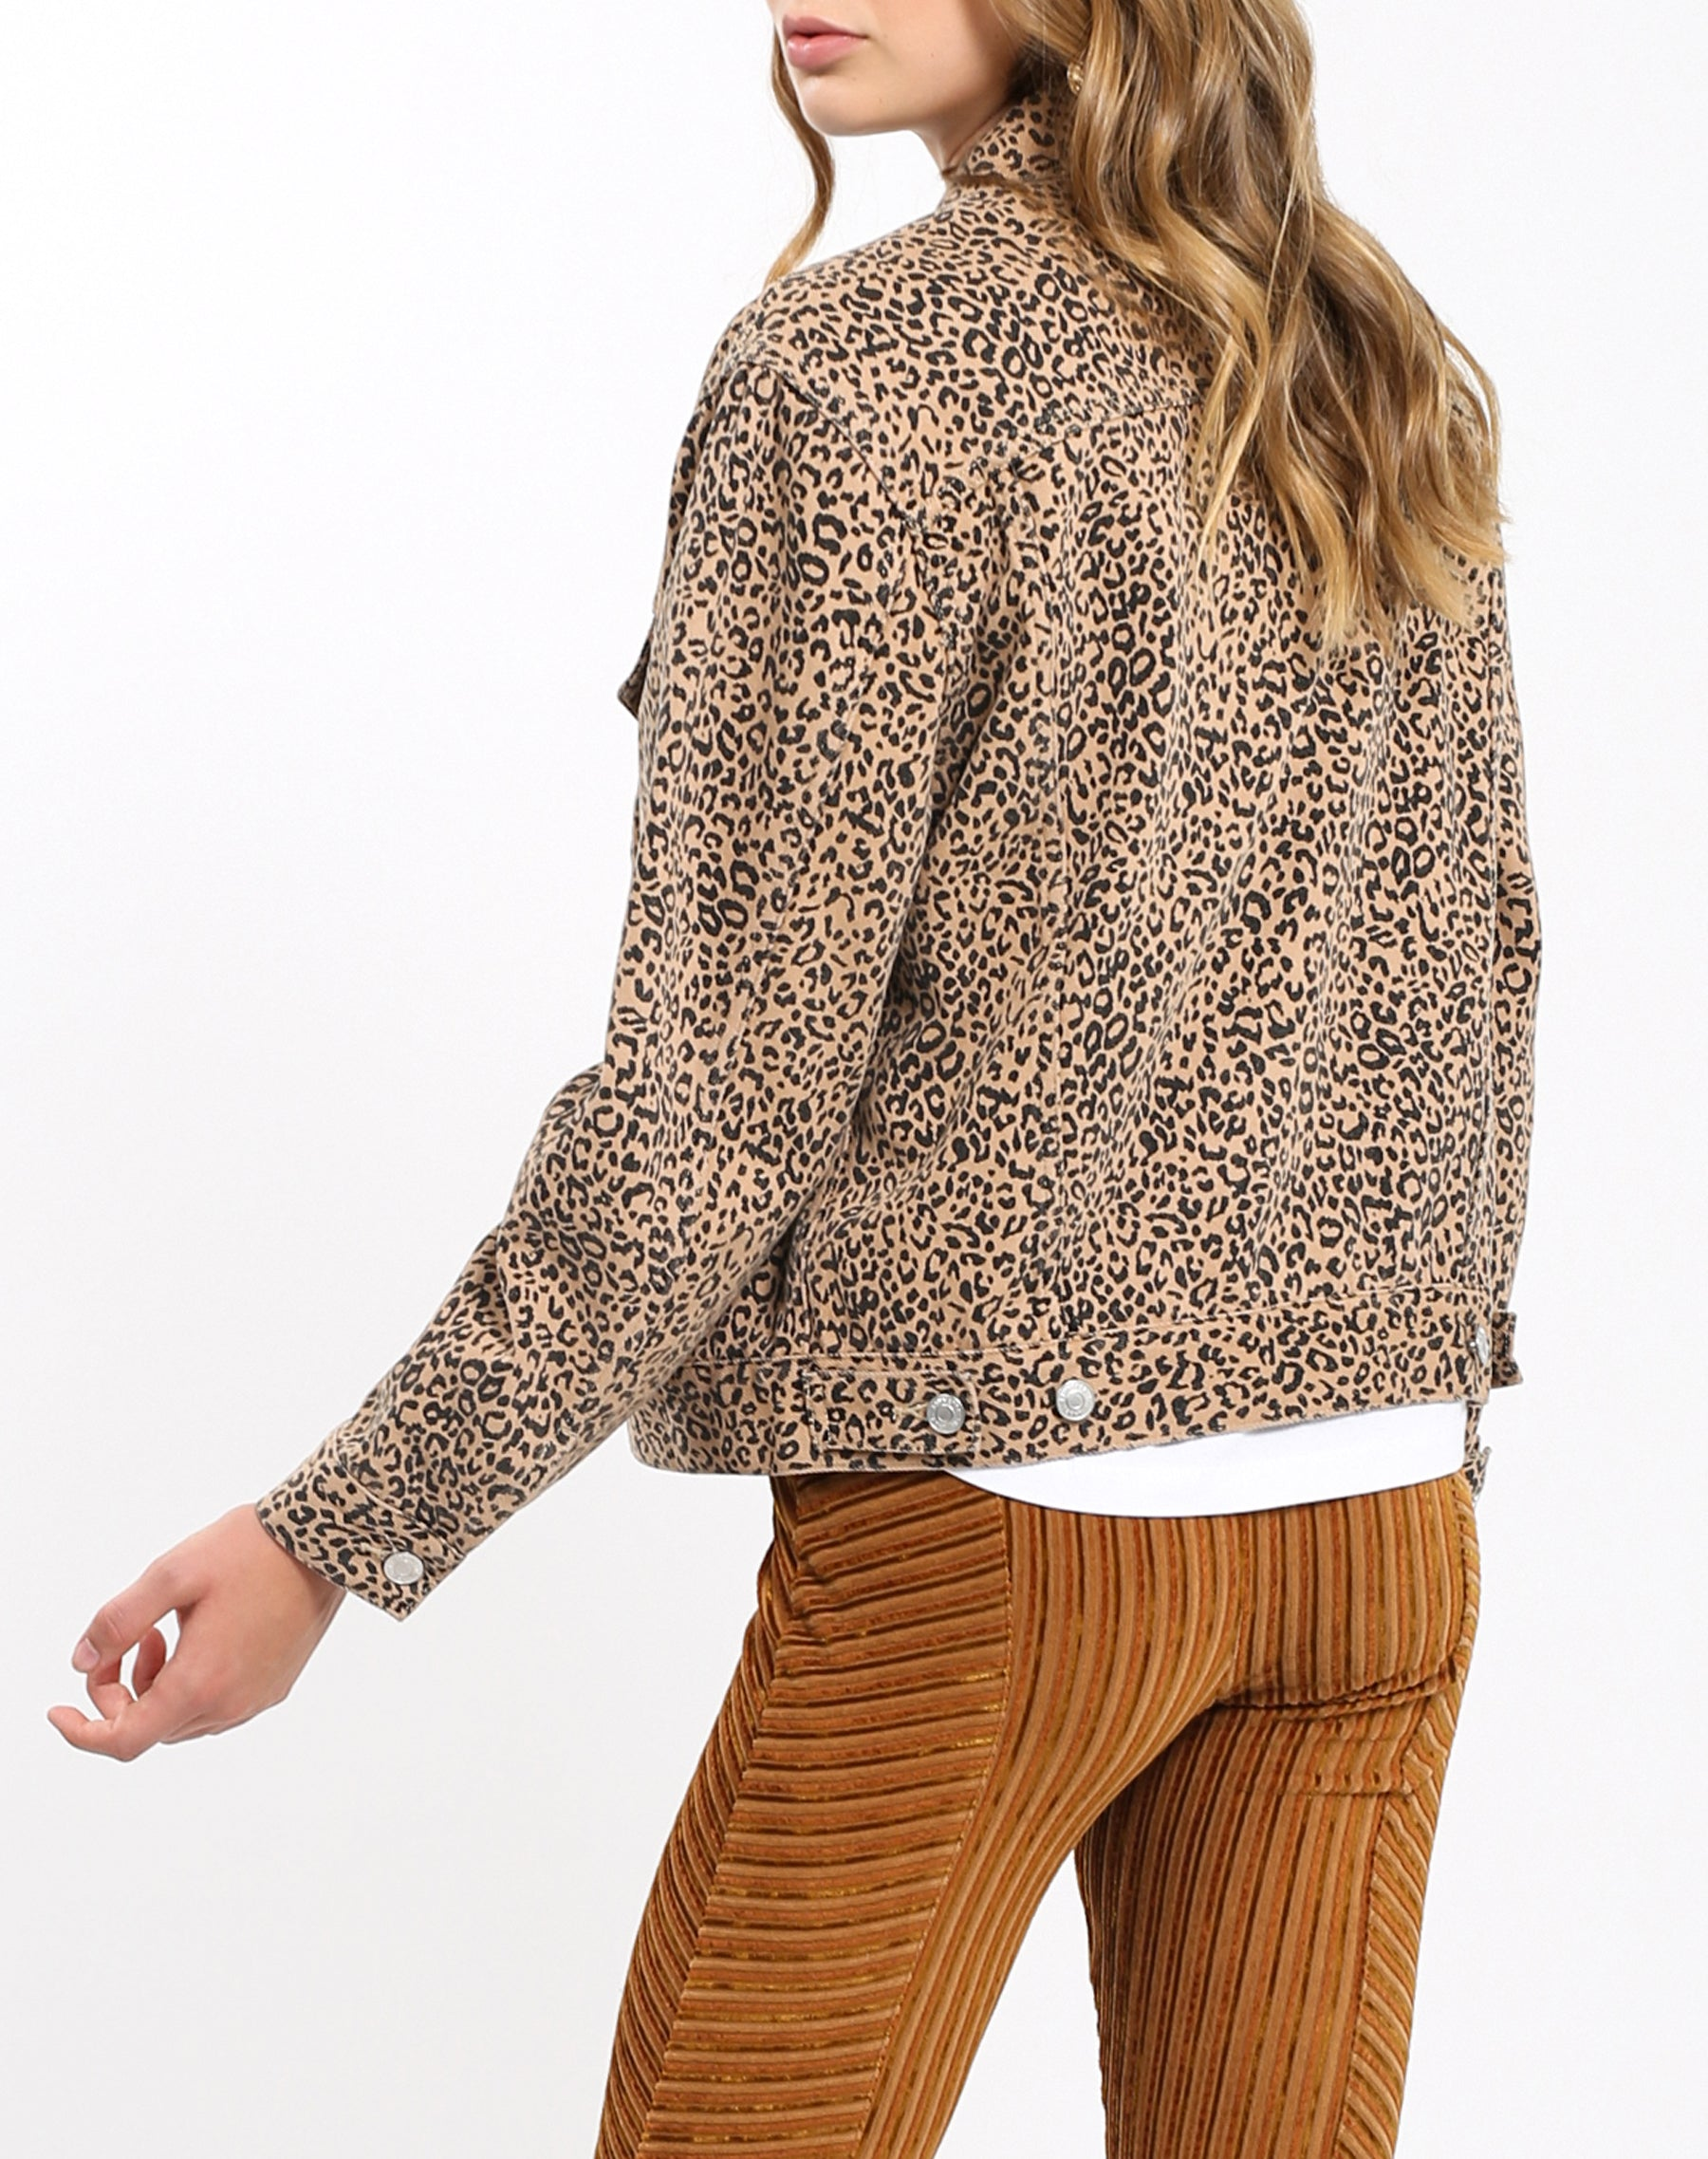 The back of the Lindsay Denim Jacket in Leopard by Brunette the Label.